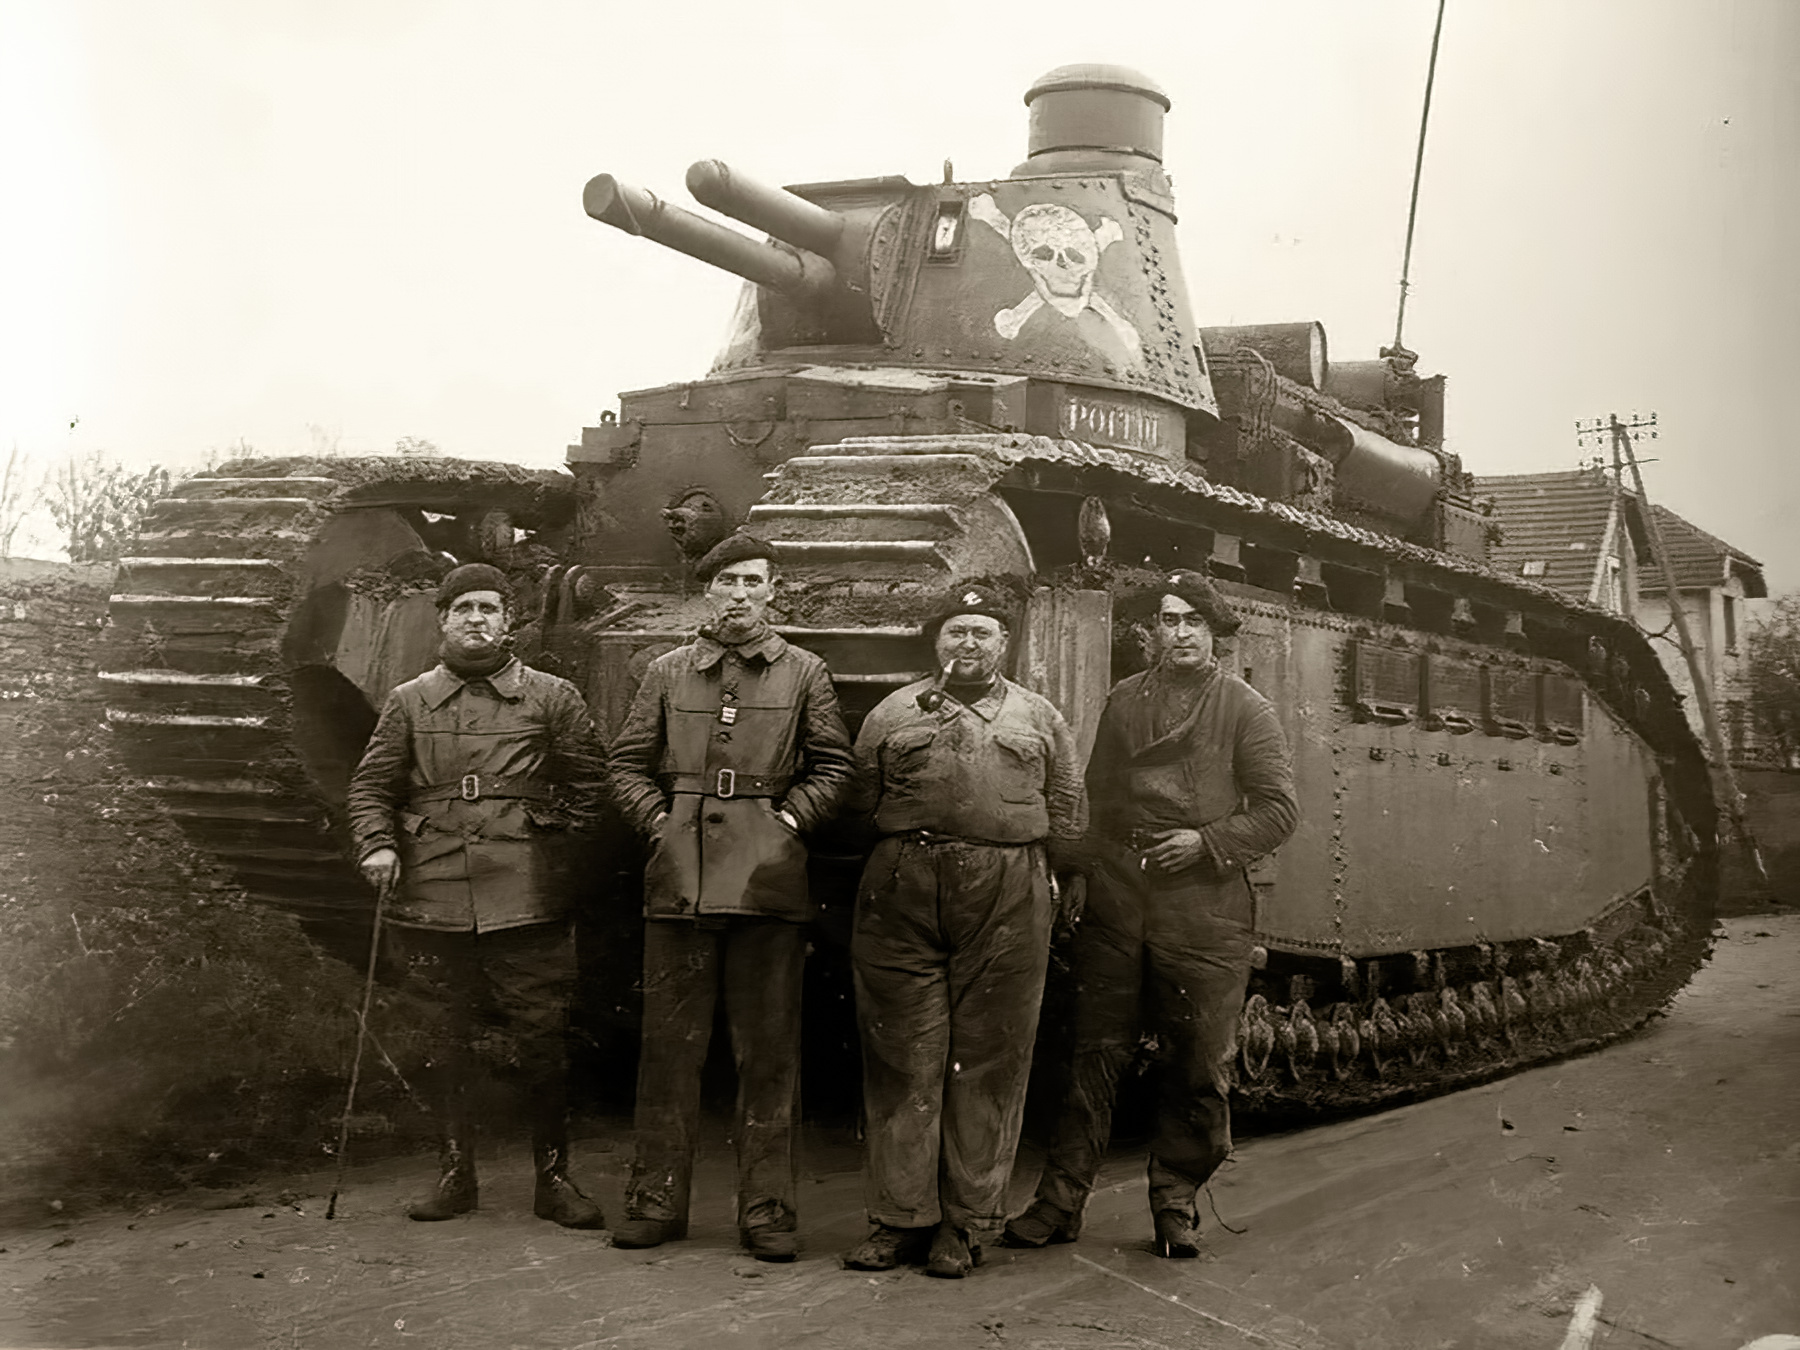 French Army Char 2C or FCM 2C was a heavy tank used during battle of France 1940 web 01